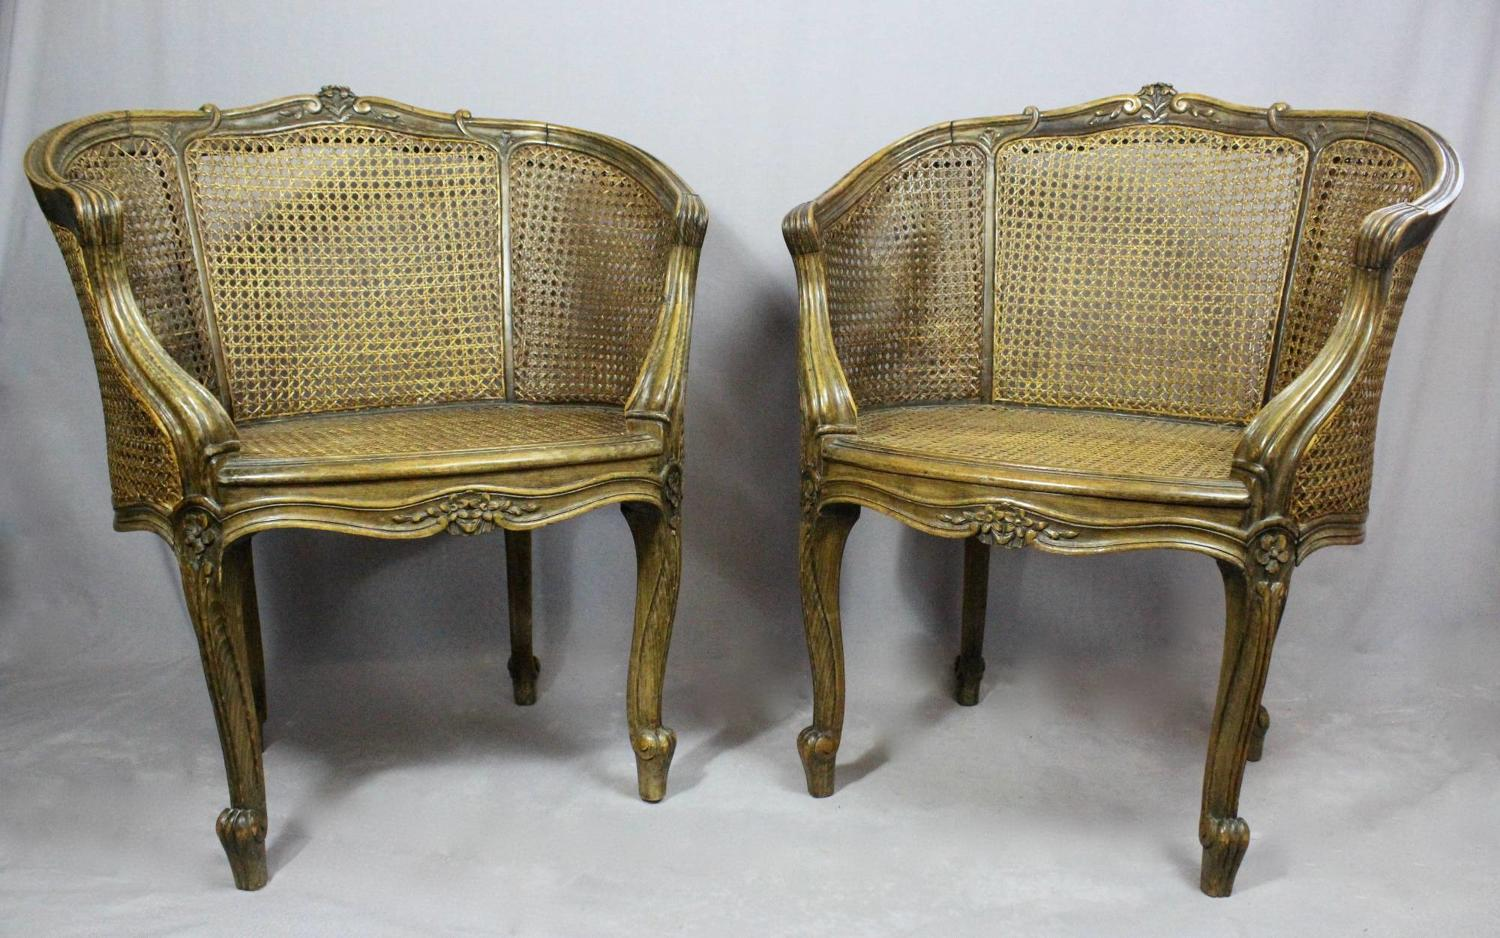 Pair of Louis XV Style Bergere Chairs